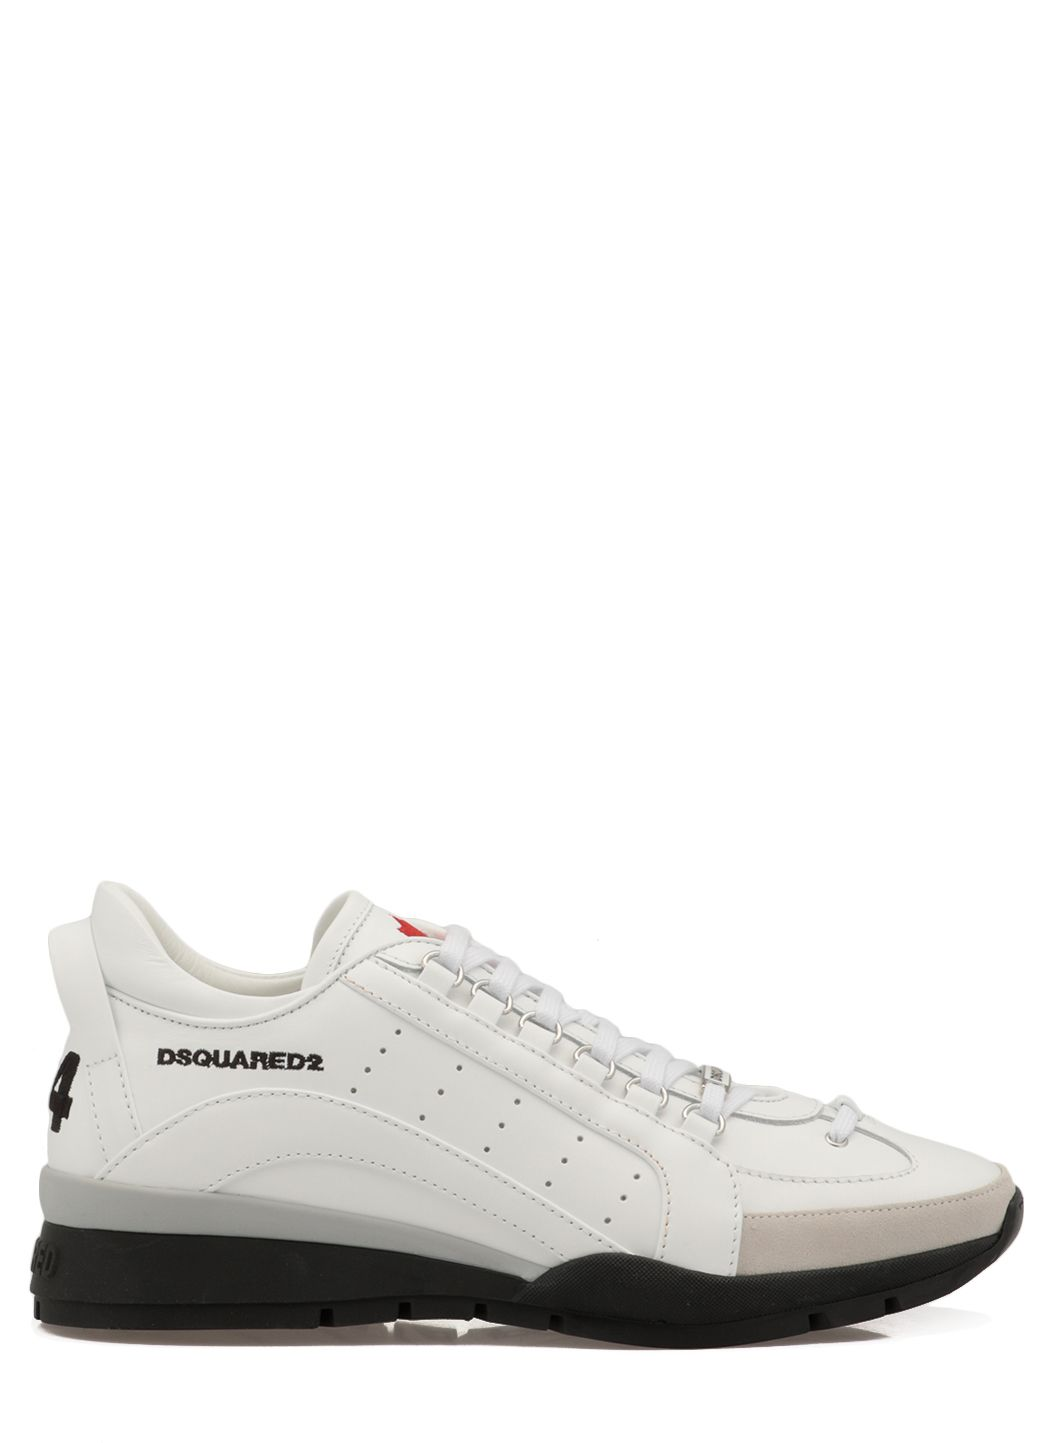 Leather Dsqaured2 Sneaker